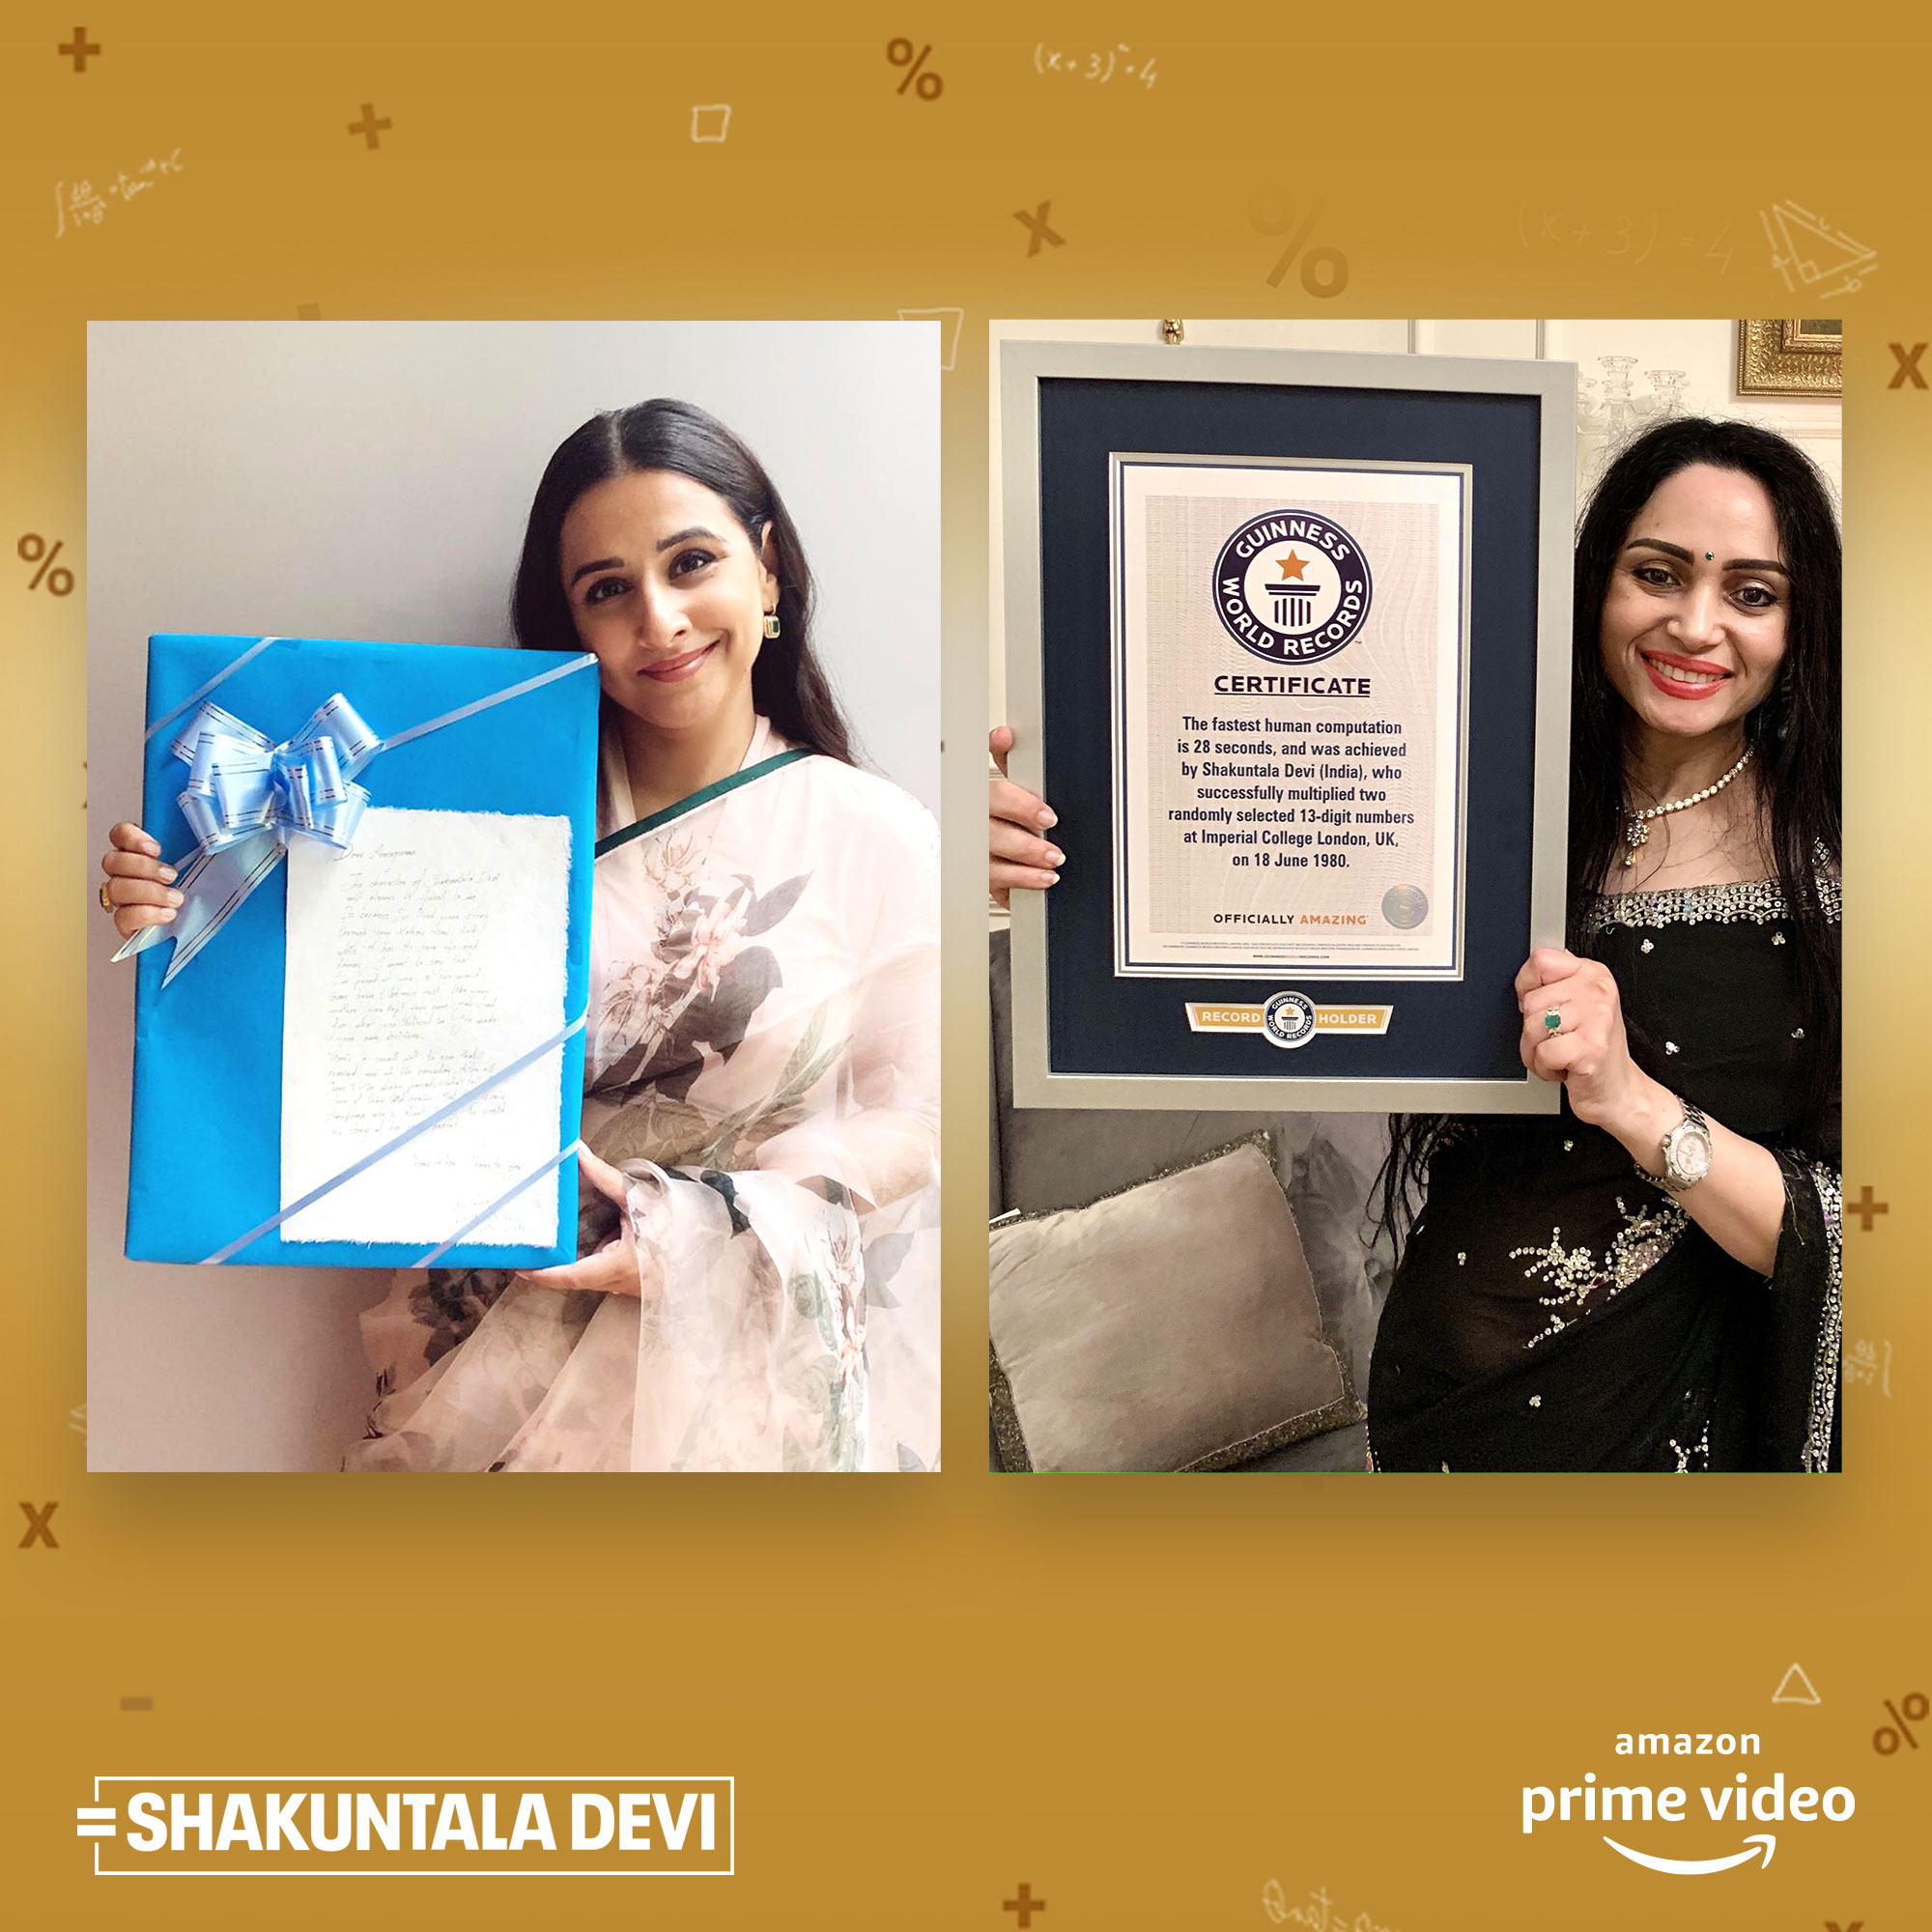 AHEAD OF THE RELEASE OF SHAKUNTALA DEVI', GUINNESS WORLD RECORDSTM AWARDS CERTIFICATE TO THE LATE SHAKUNTALA DEVI FOR 'FASTEST HUMAN COMPUTATION'